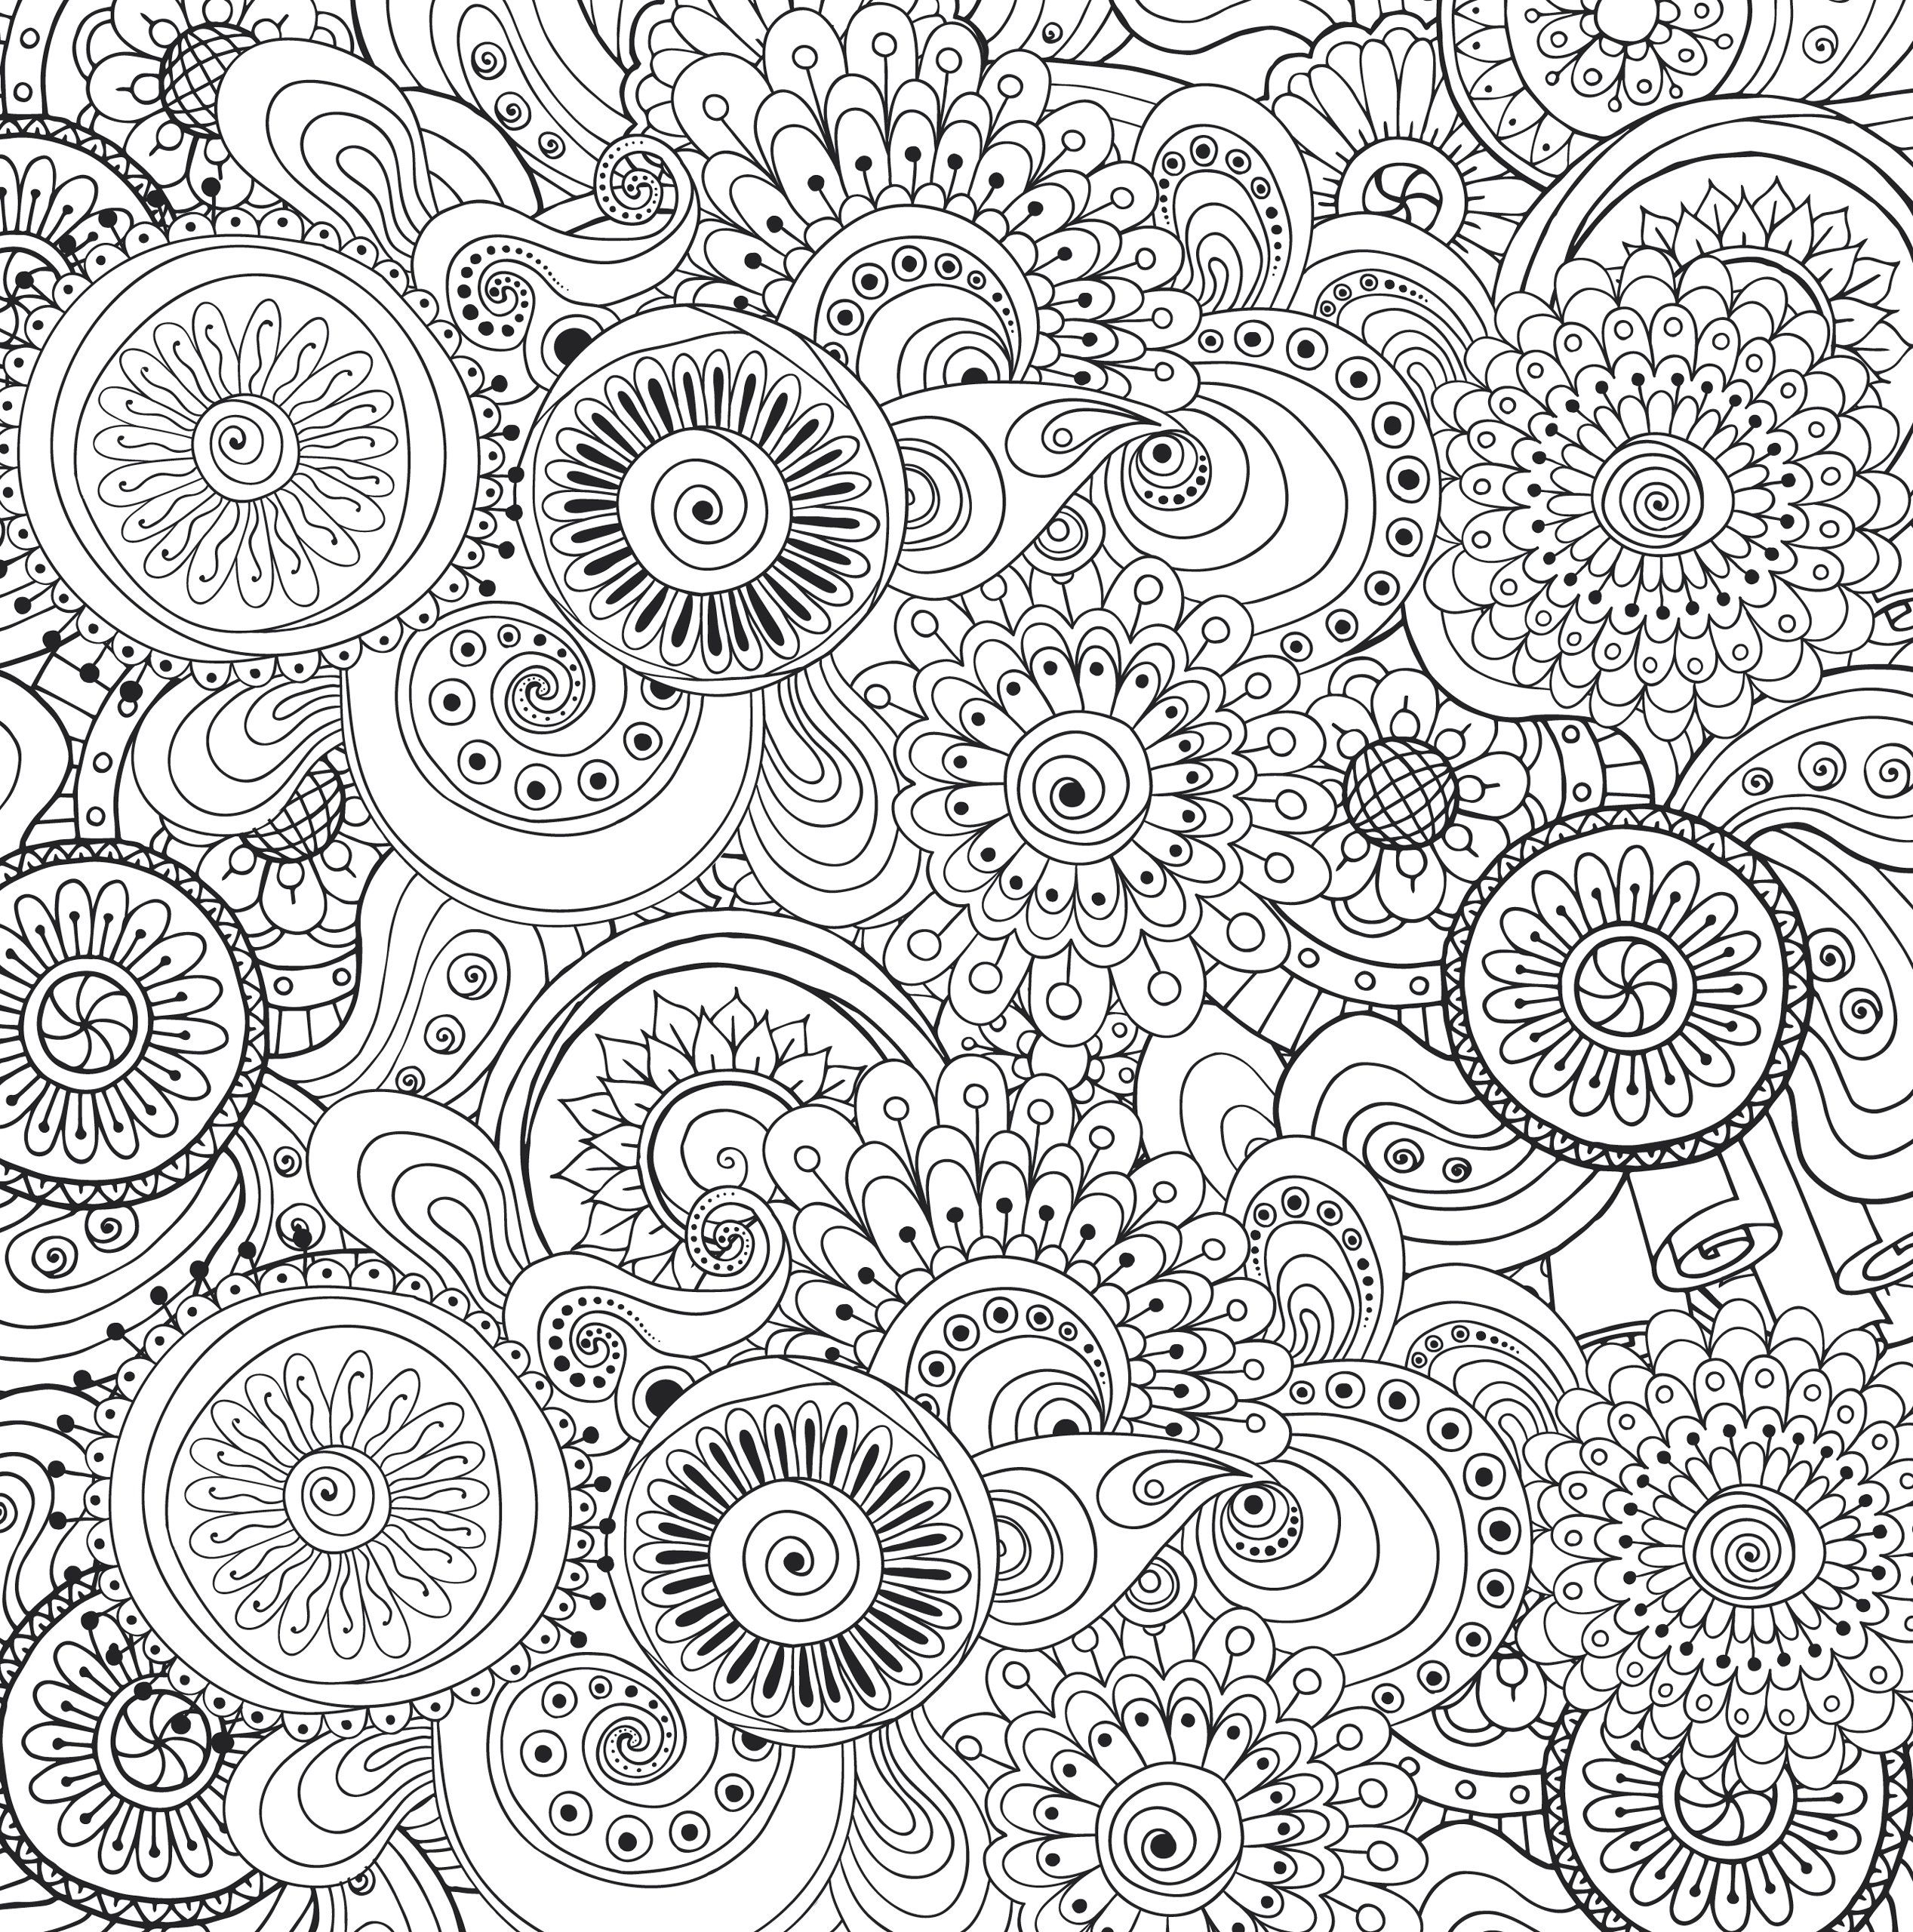 Adults colouring book pages - Peaceful Paisleys Adult Coloring Book 31 Stress Relieving Designs Peter Pauper Press